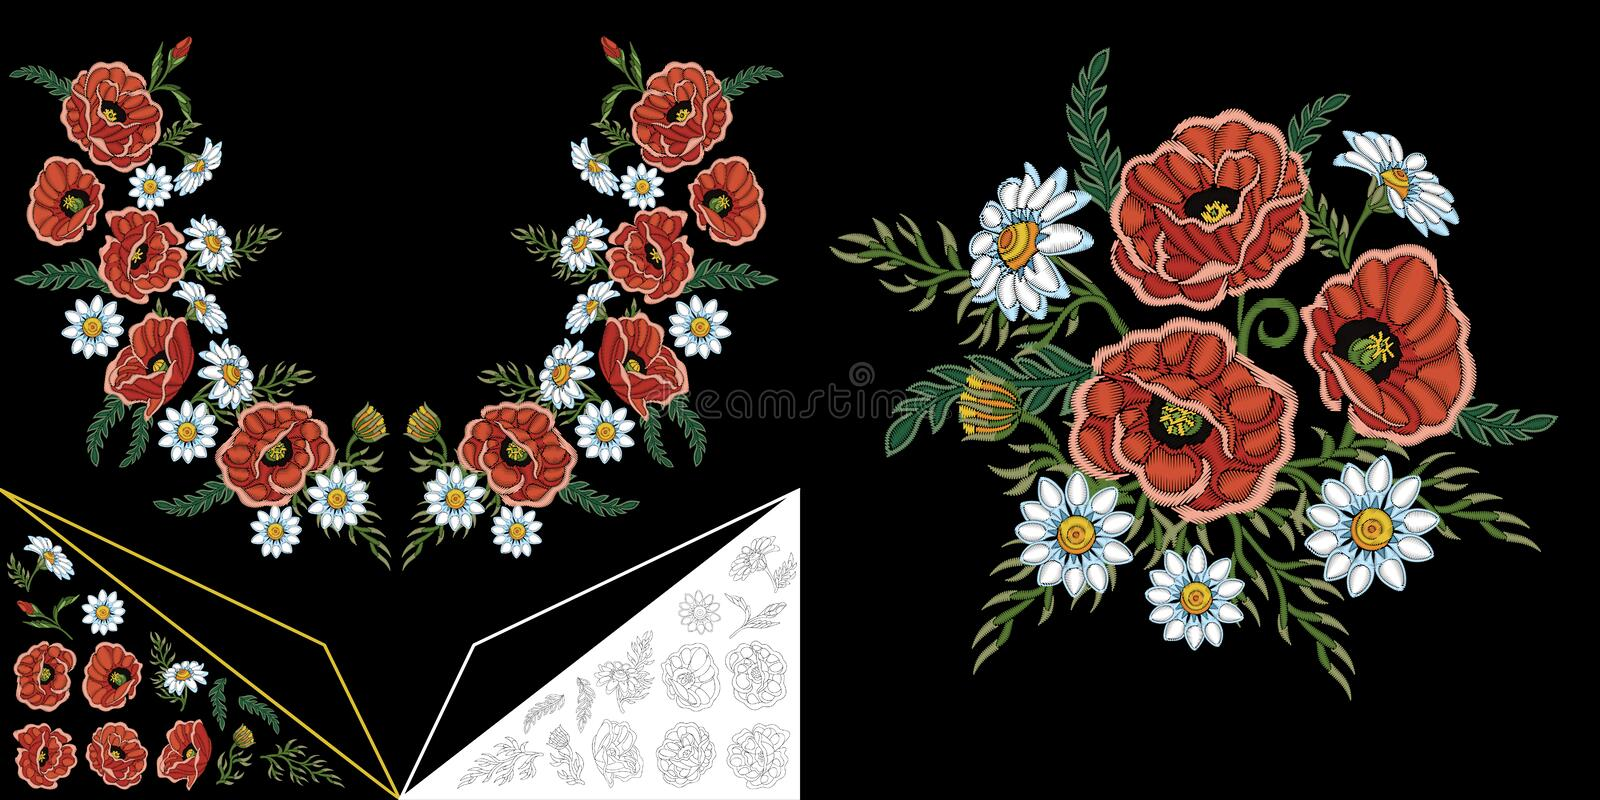 Embroidery floral neckline design stock photography